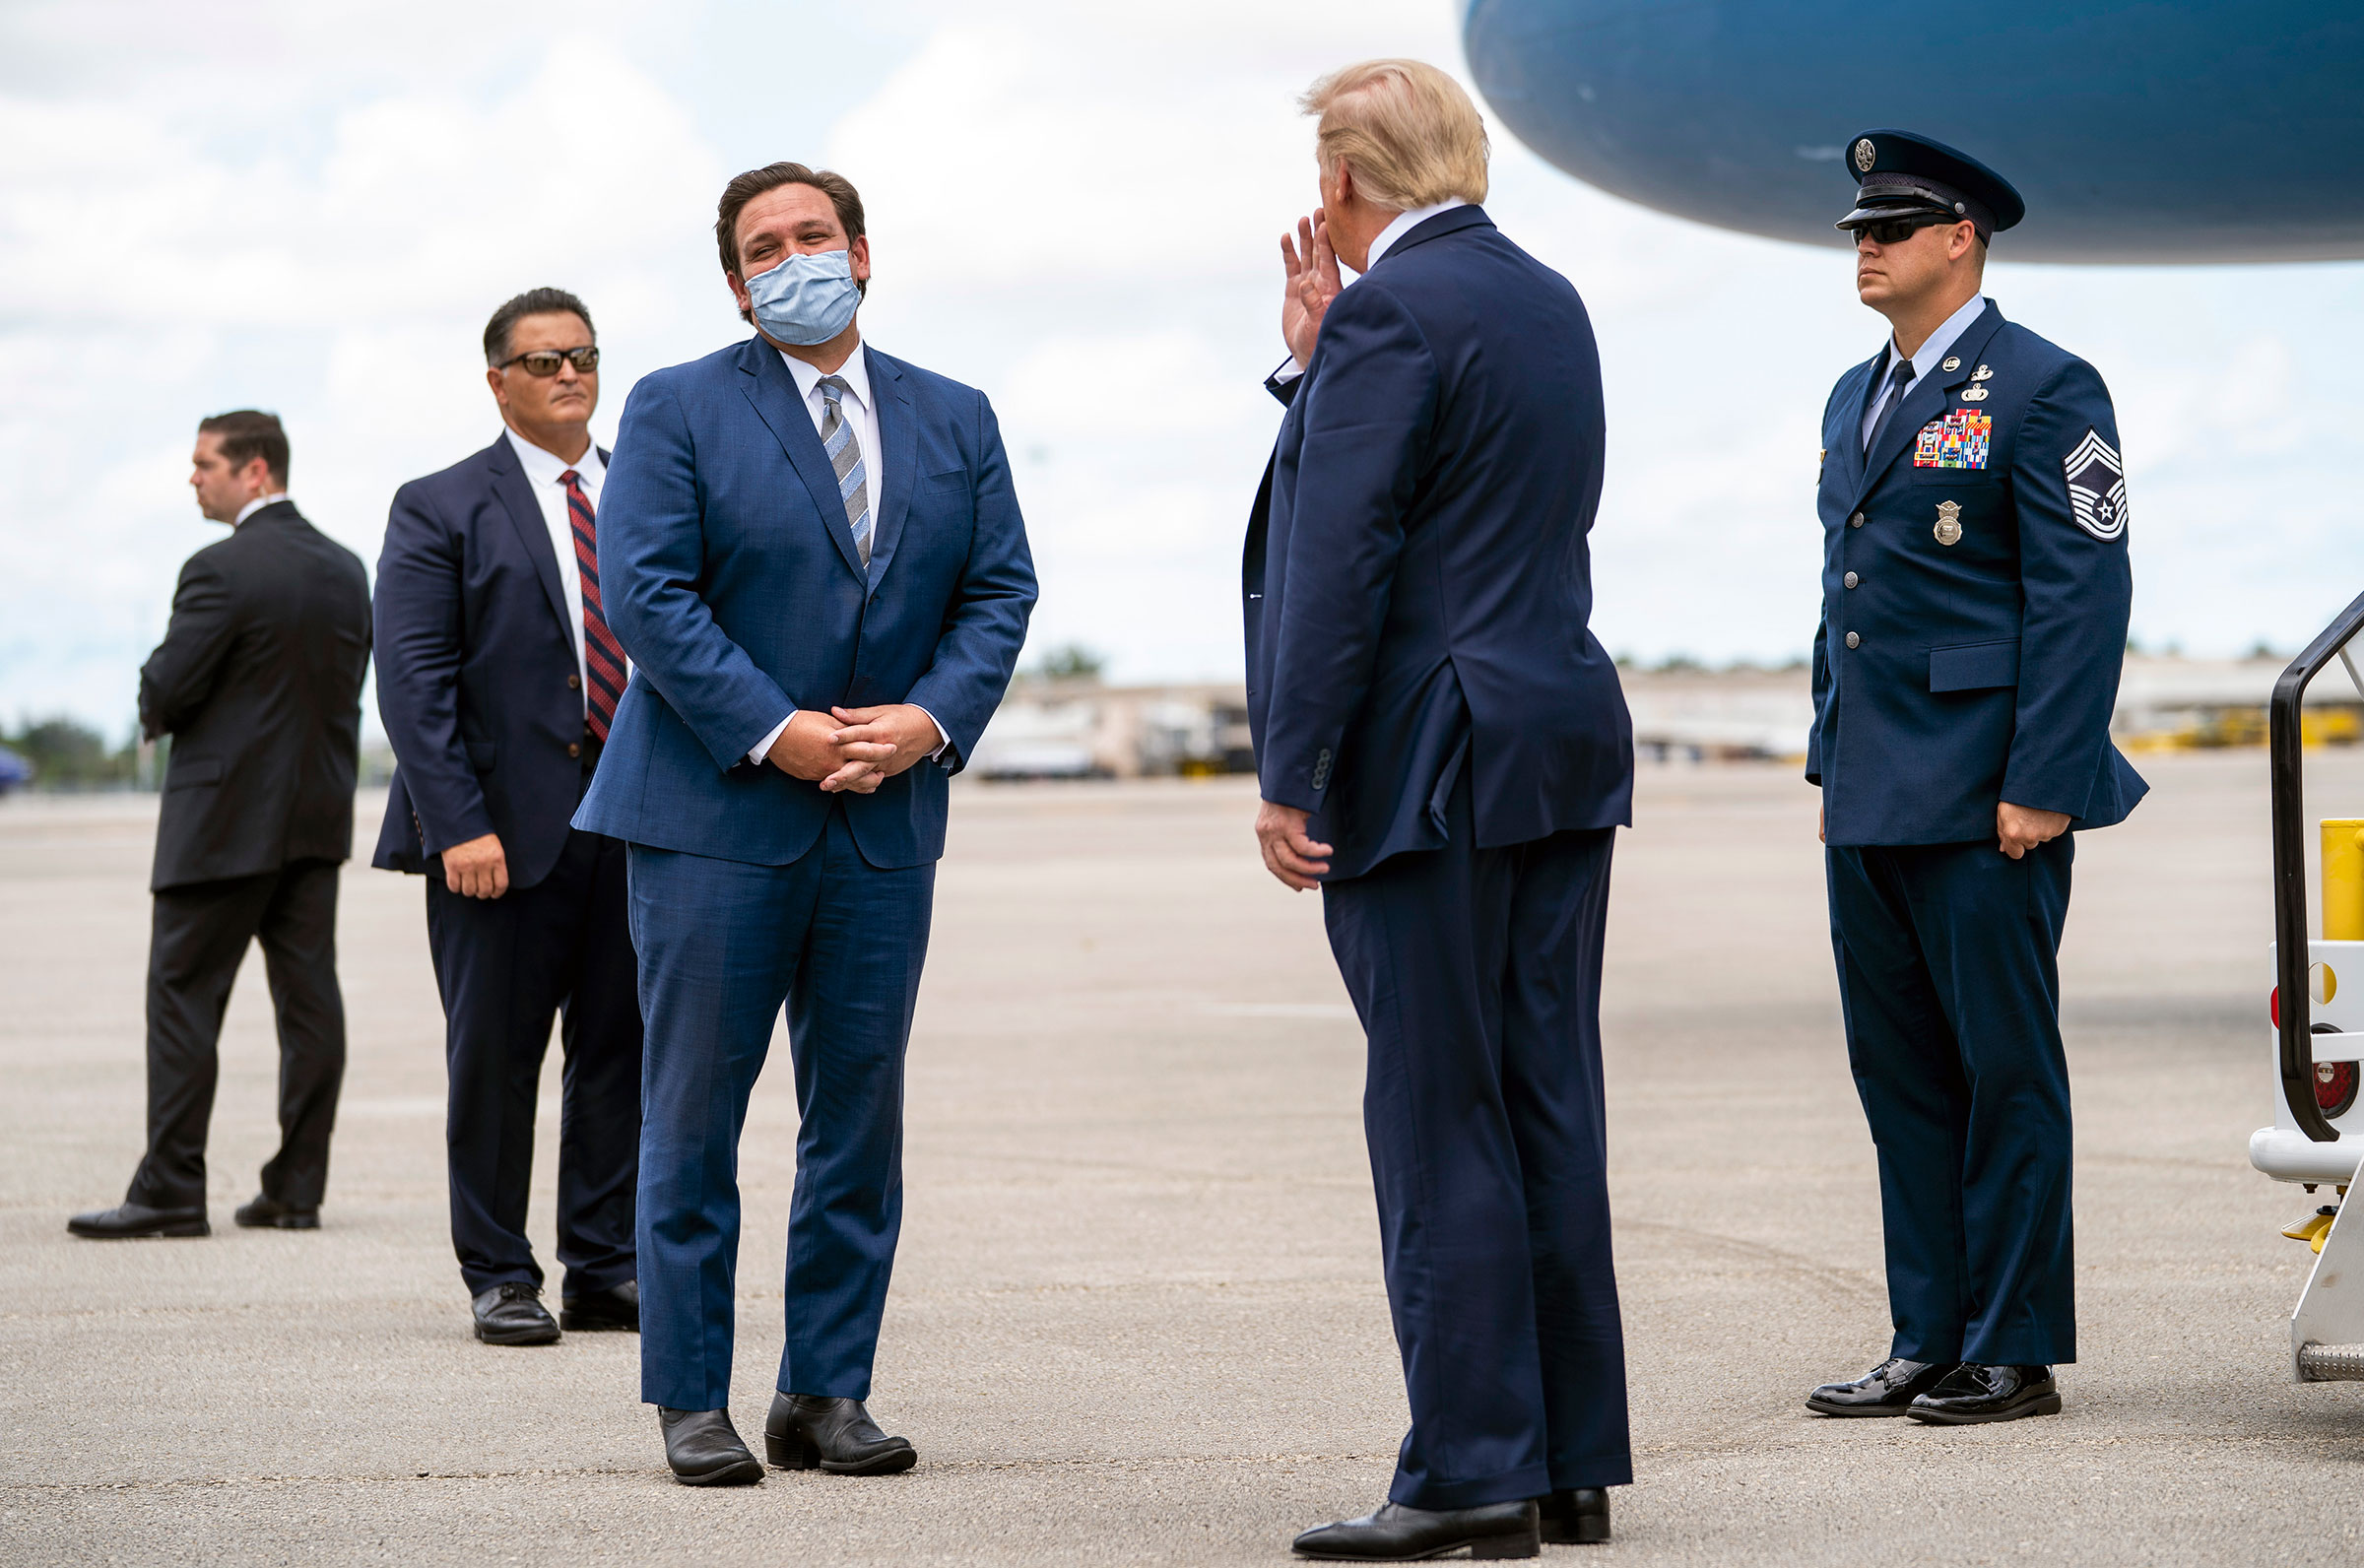 President Donald Trump is greeted by Gov. Ron DeSantis of Florida upon his arrival at Palm Beach International Airport on Sept. 8, 2020.